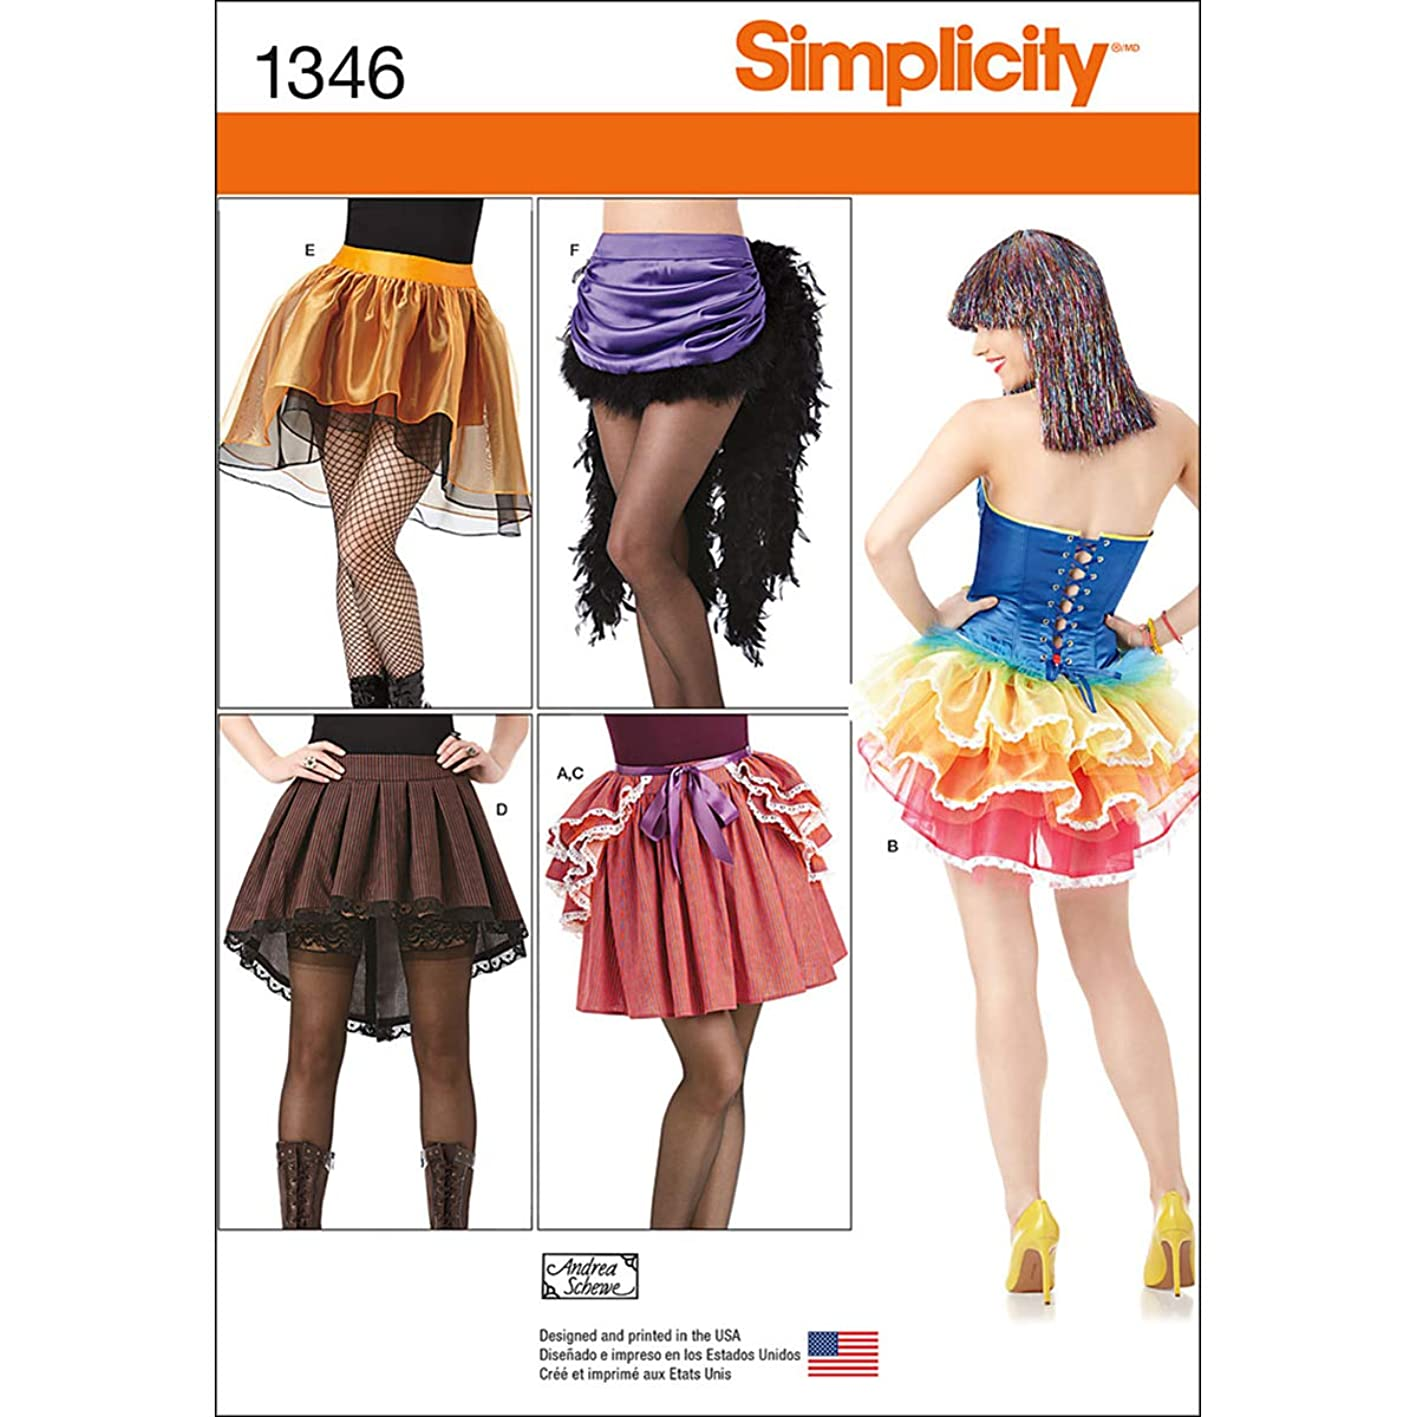 Simplicity 1346 Women's Skirt Costume Sewing Patterns, Size 14-22 qeicsghyrre355